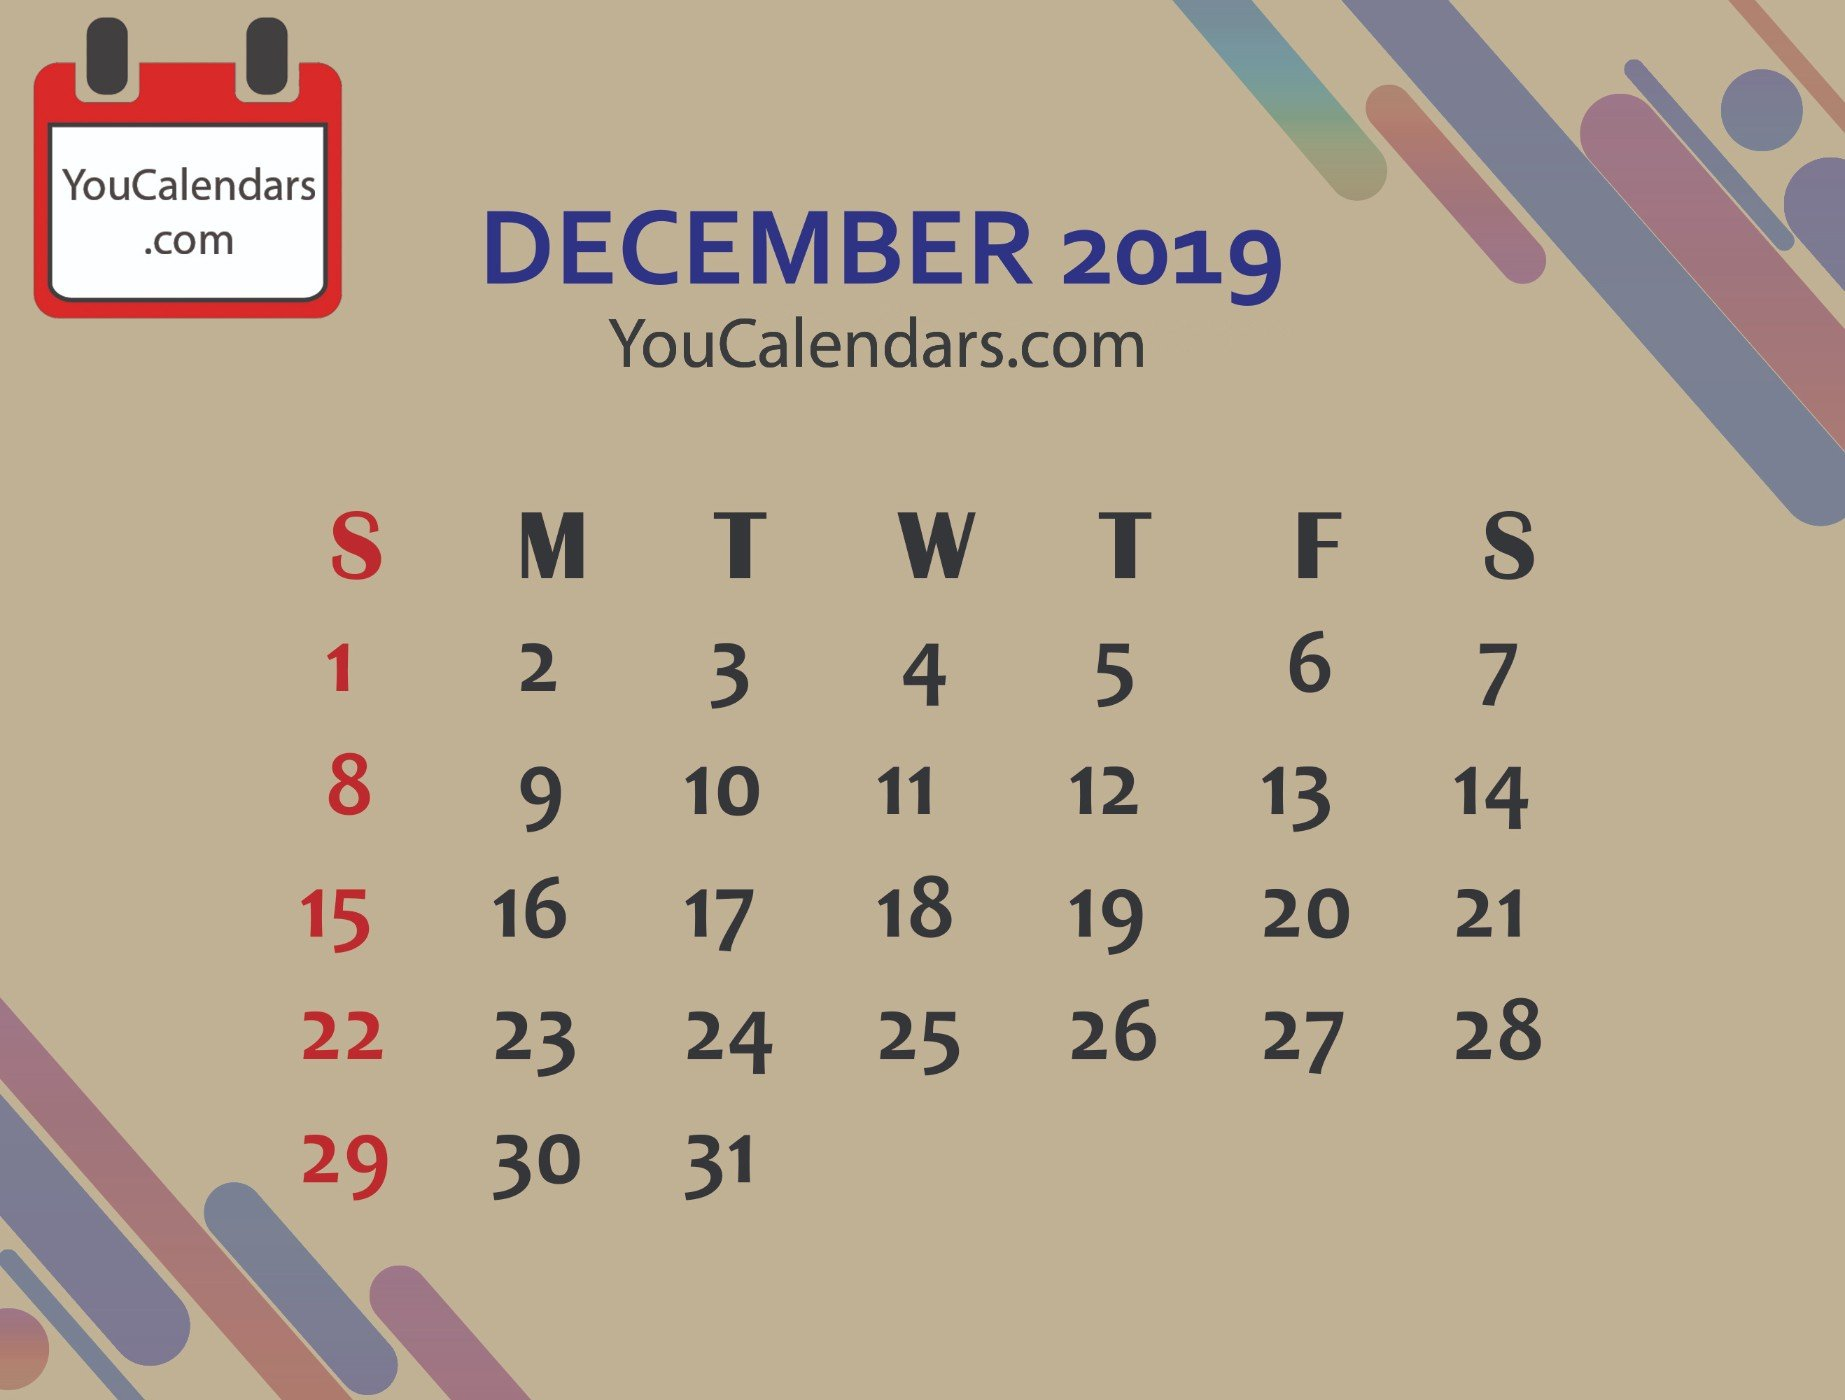 ✅Free December 2019 Calendar Printable Template - You Calendars 6 Nations 2019 Calendar Download